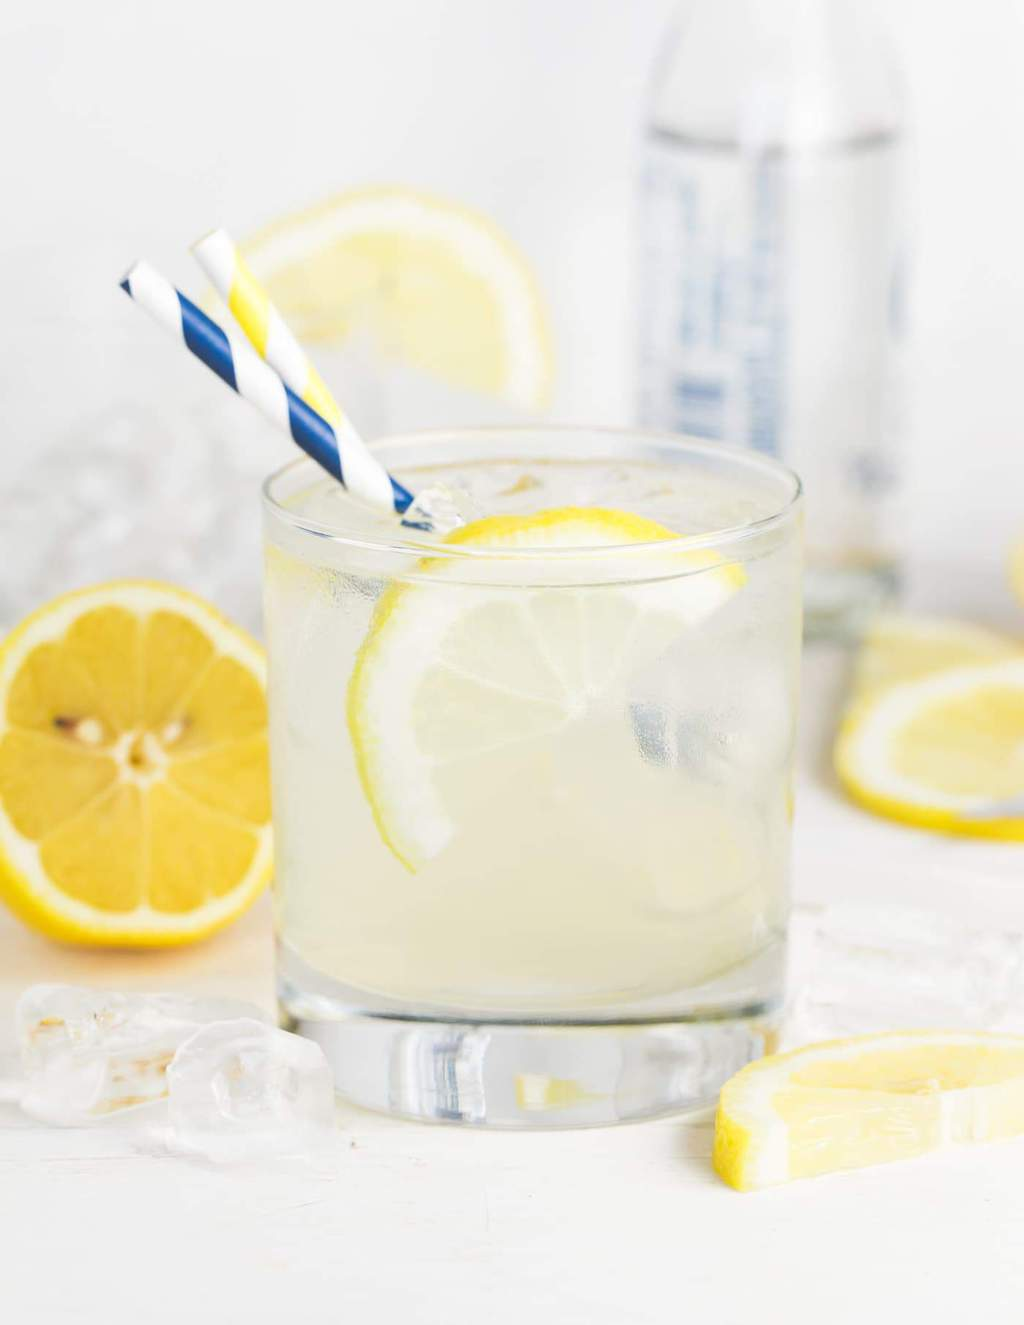 straight on shot of vodka elderflower lemonade in low ball glass garnished with fresh lemon slices and striped straw.